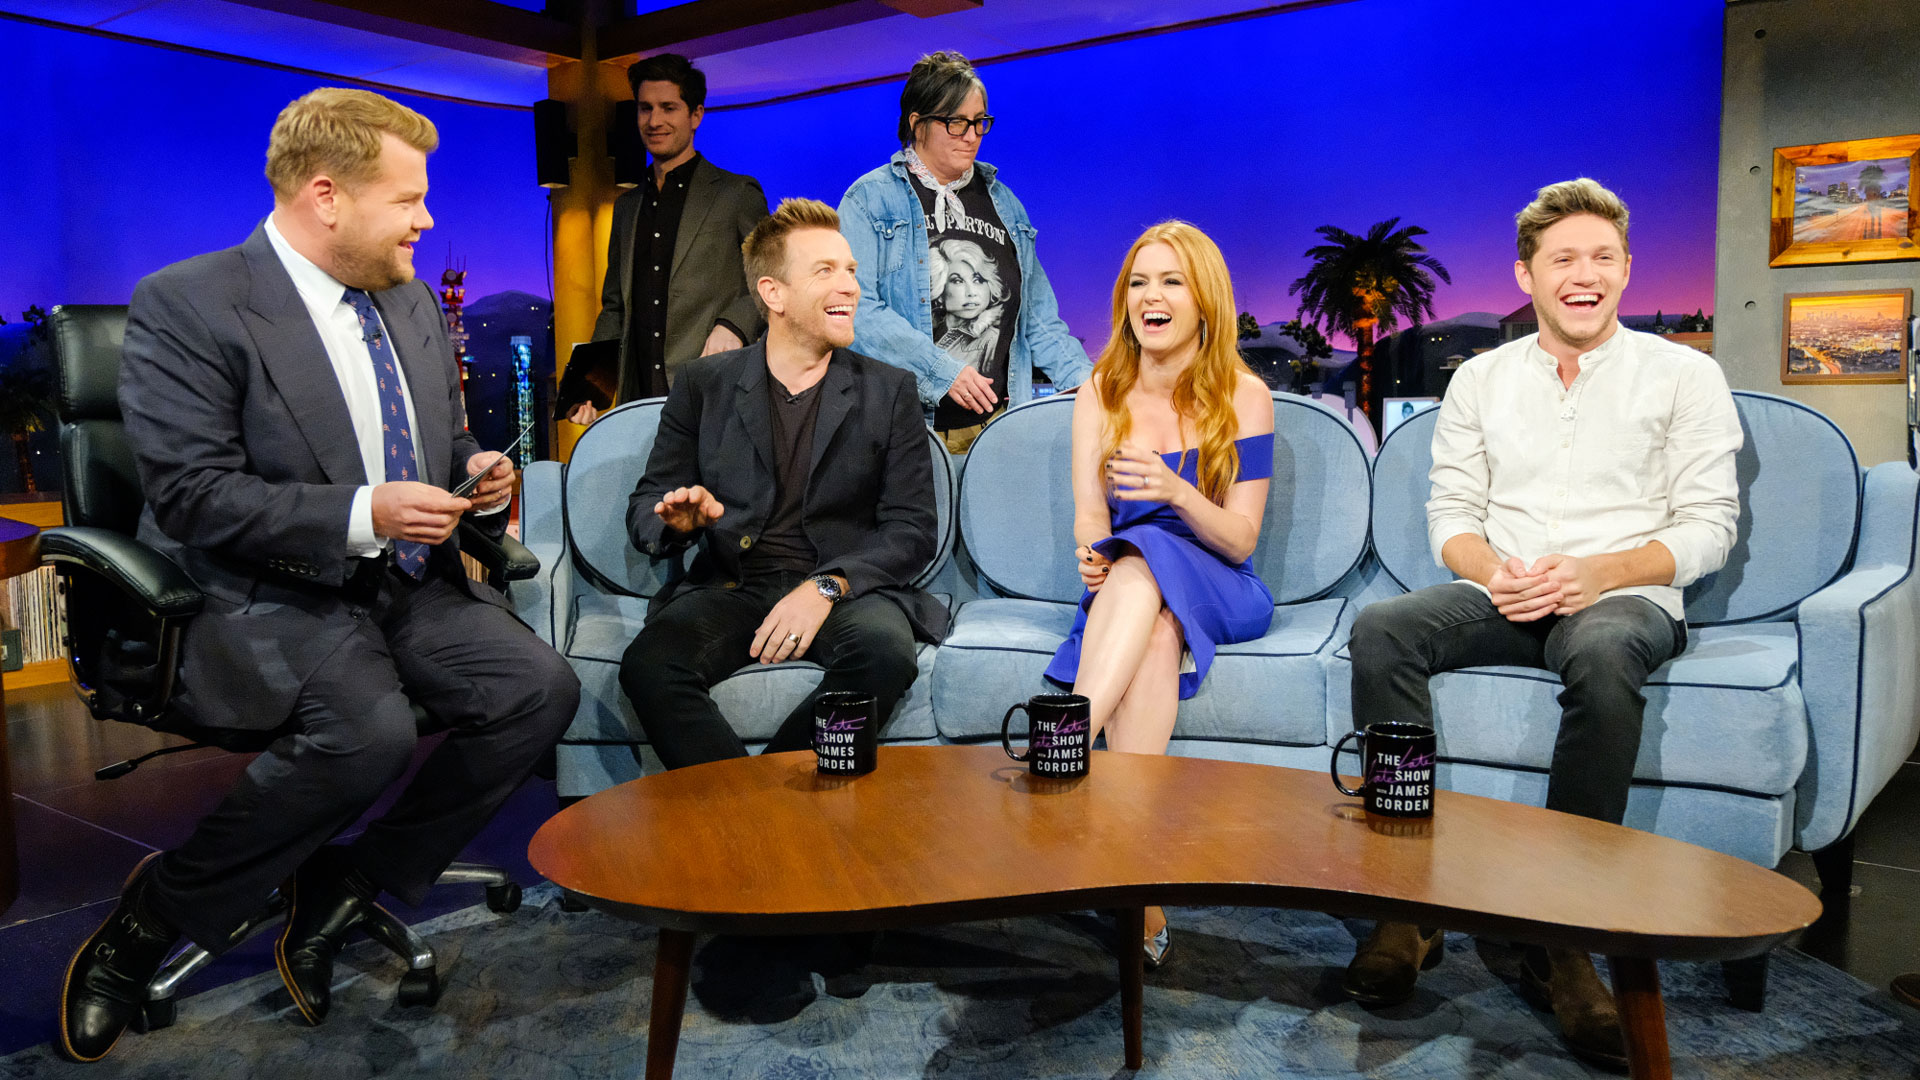 James and Niall joked with Ewan McGregor and Isla Fisher during a commercial break.